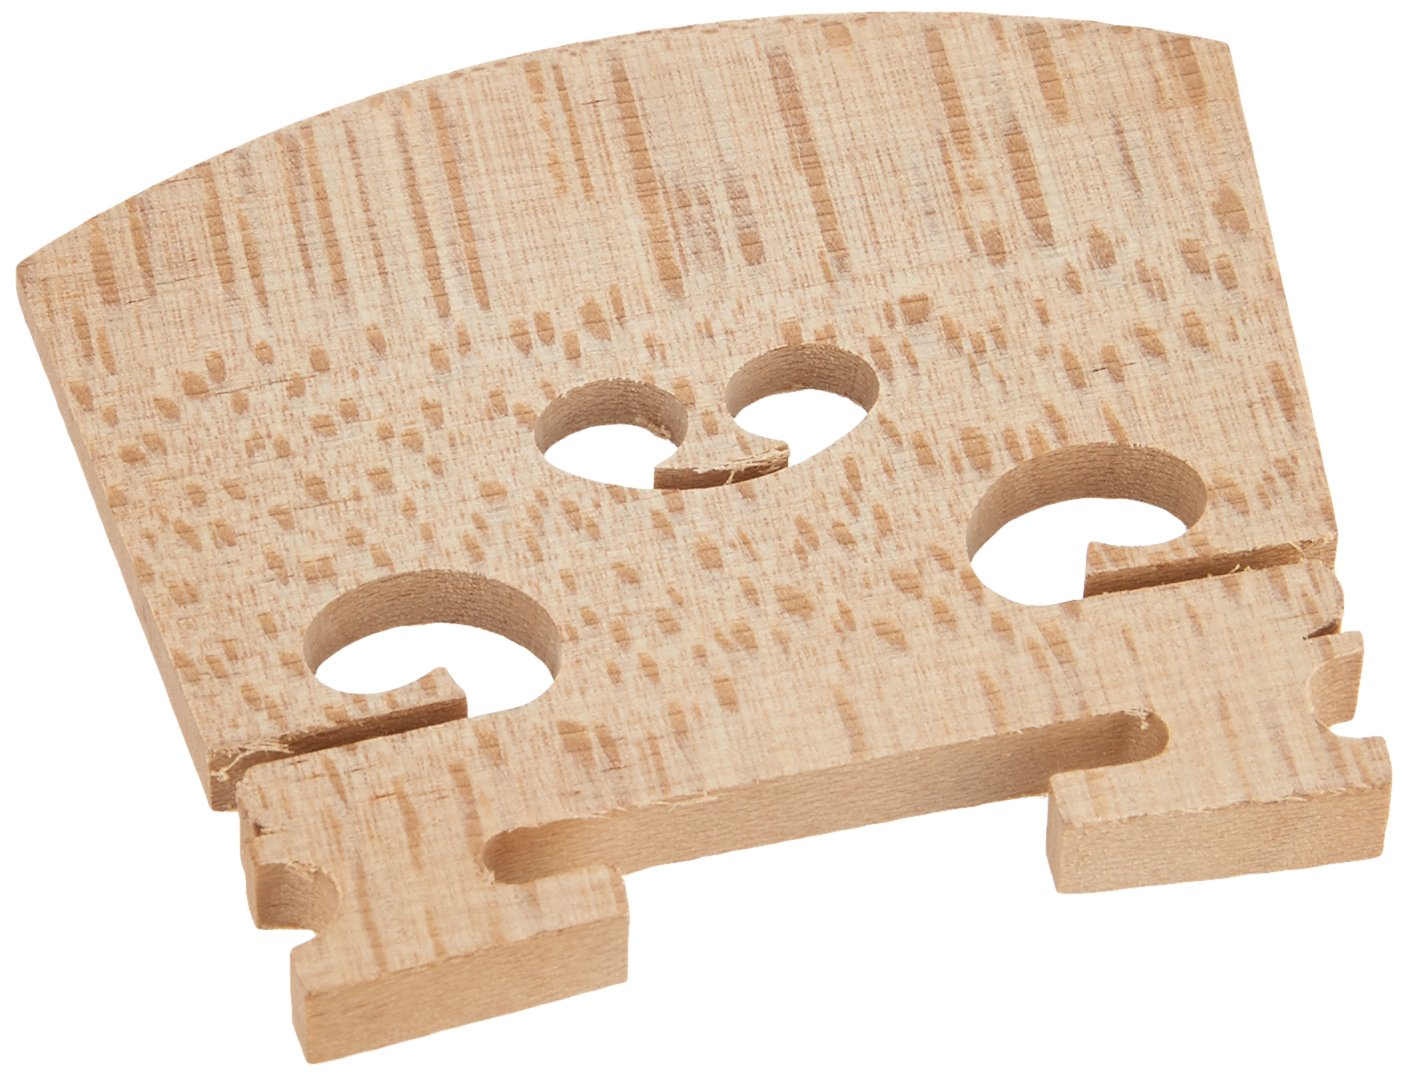 Aubert 3112.48 48mm Mirecourt Unfitted Bridge for Viola